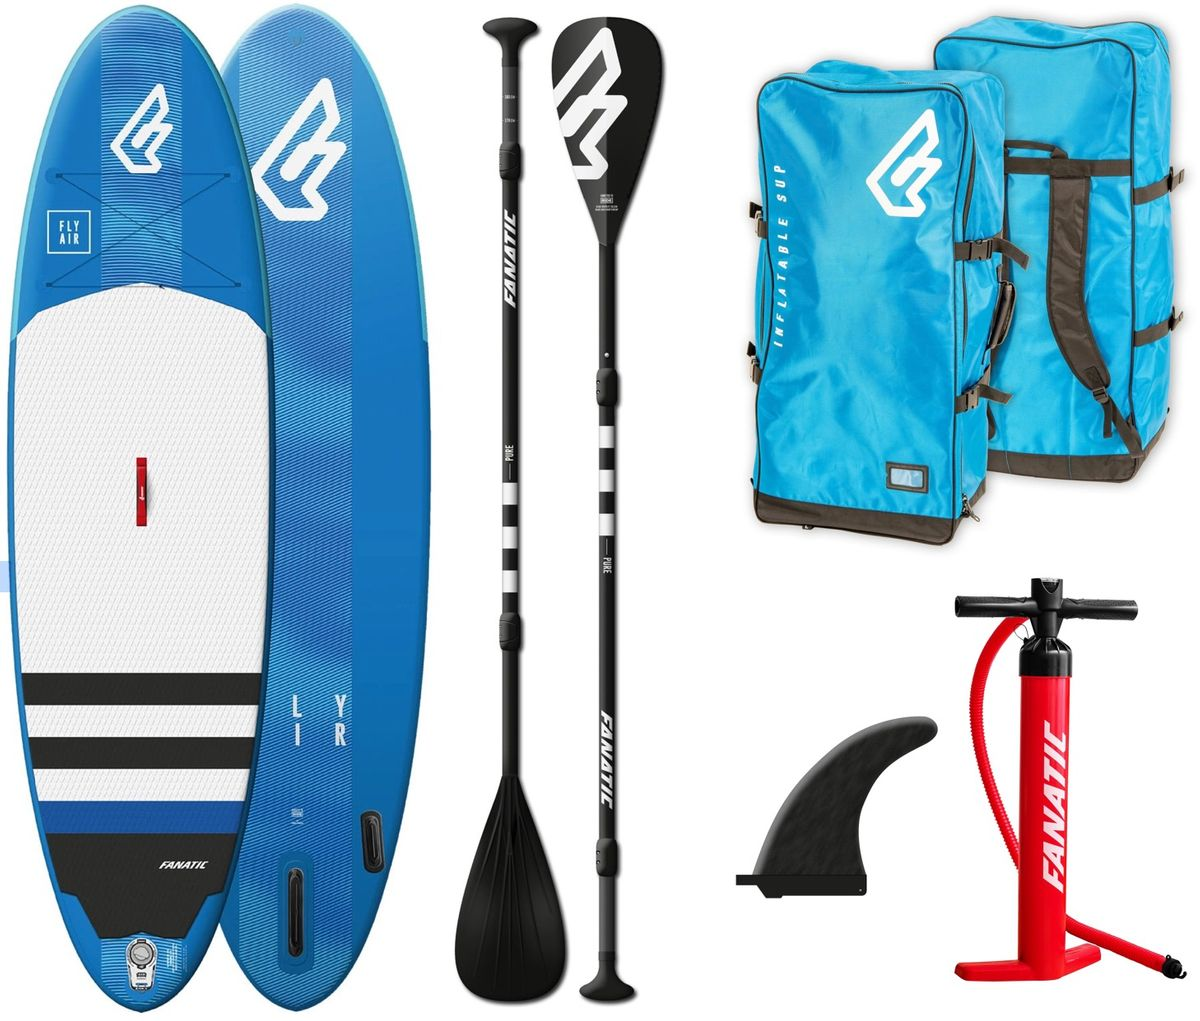 SUP Set Fly Air Fanatic Board und Paddel 2019